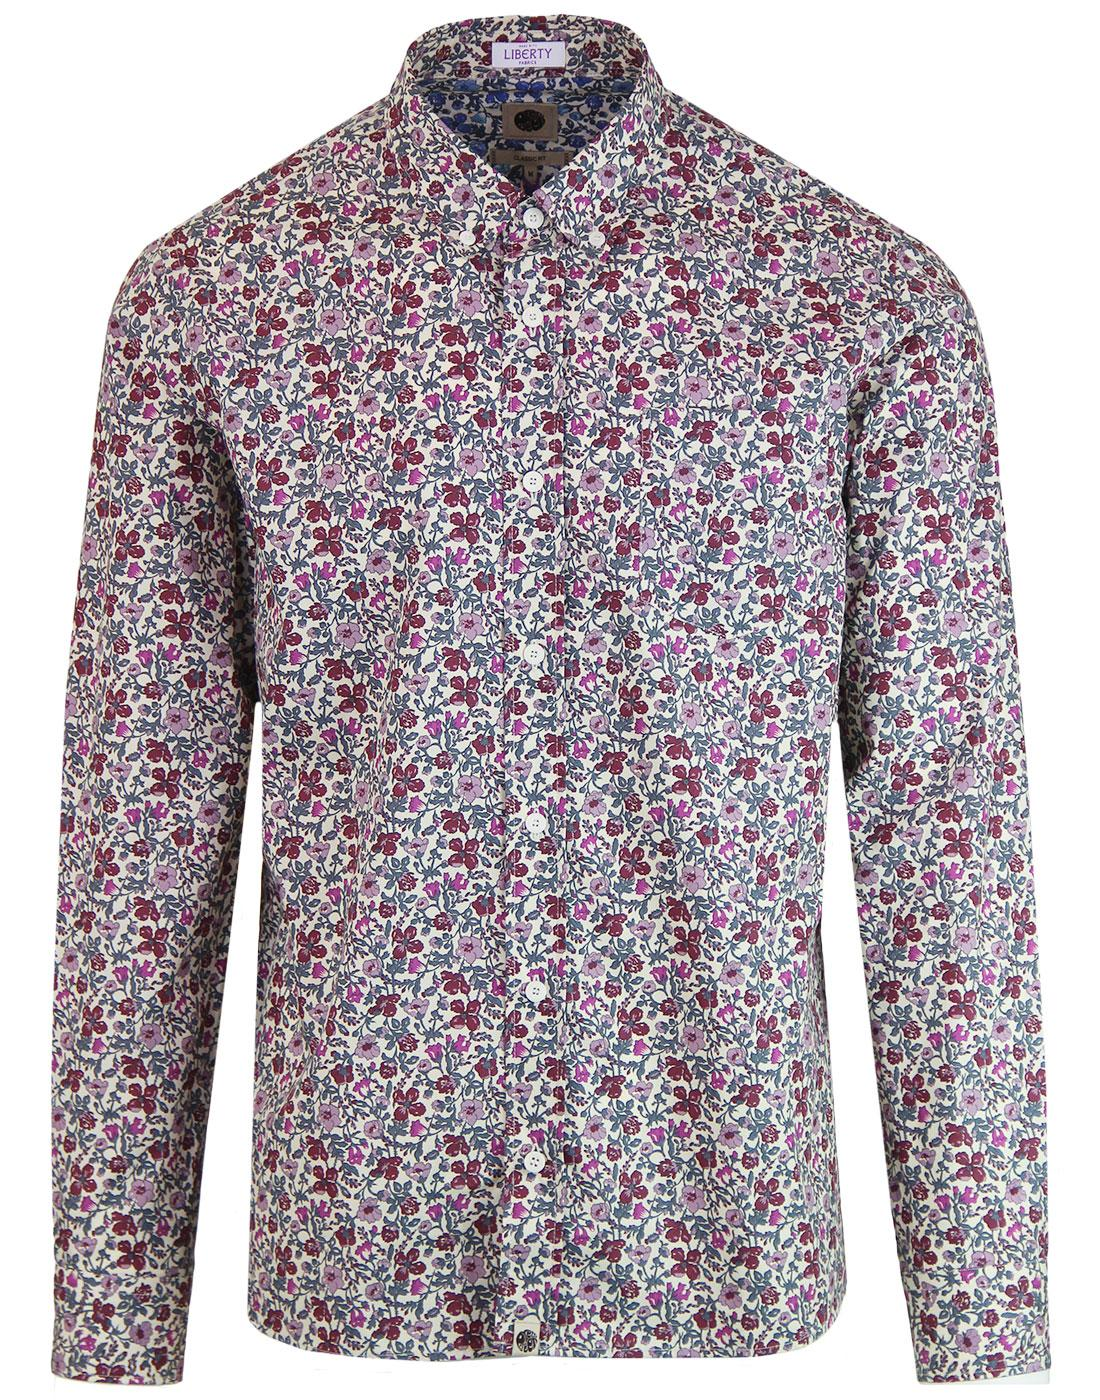 PRETTY GREEN 60s Mod Liberty Floral Shirt (Purple)